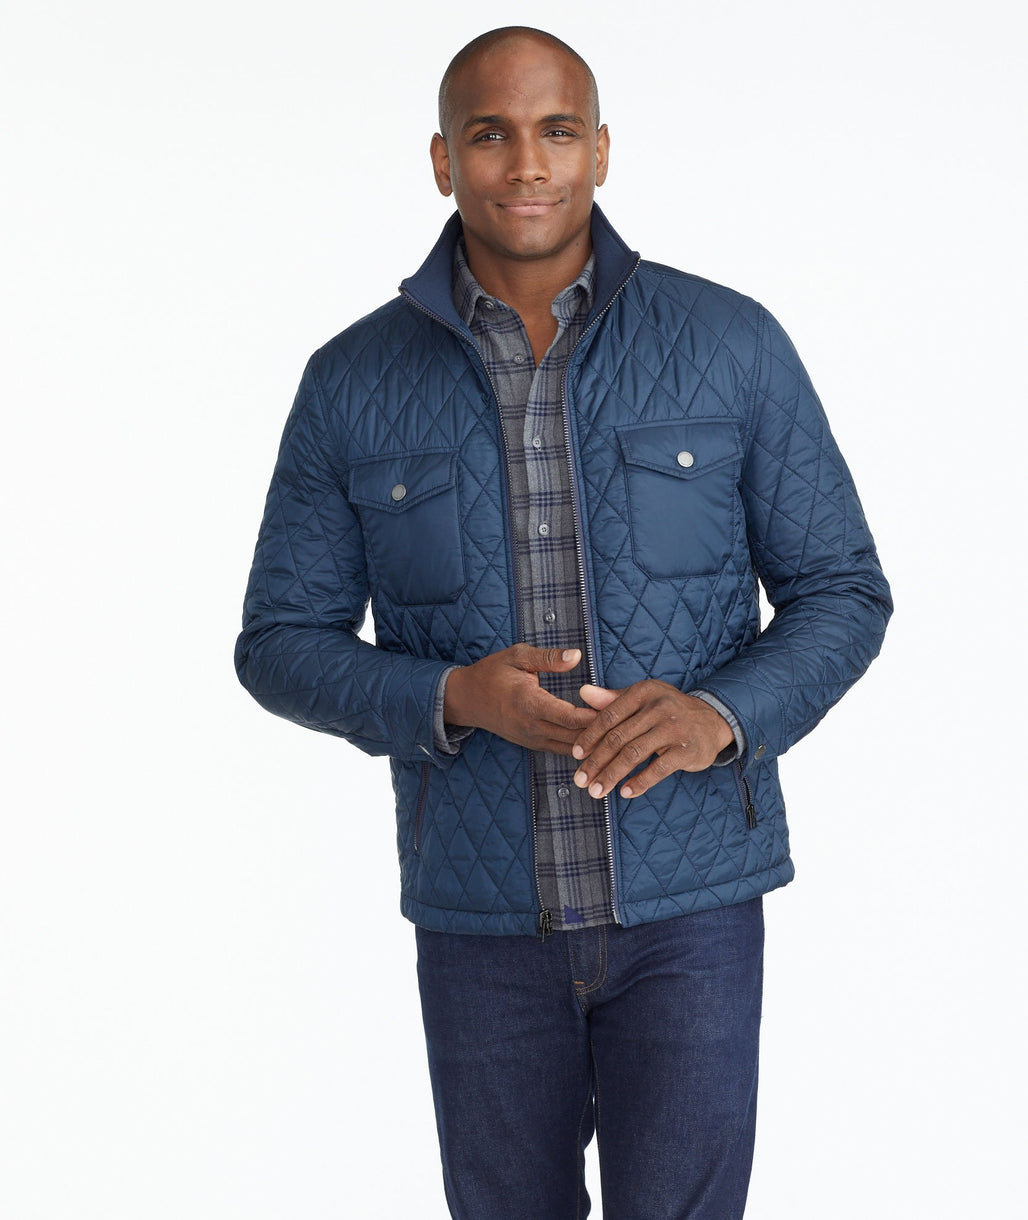 Model wearing a Navy Quilted City Jacket